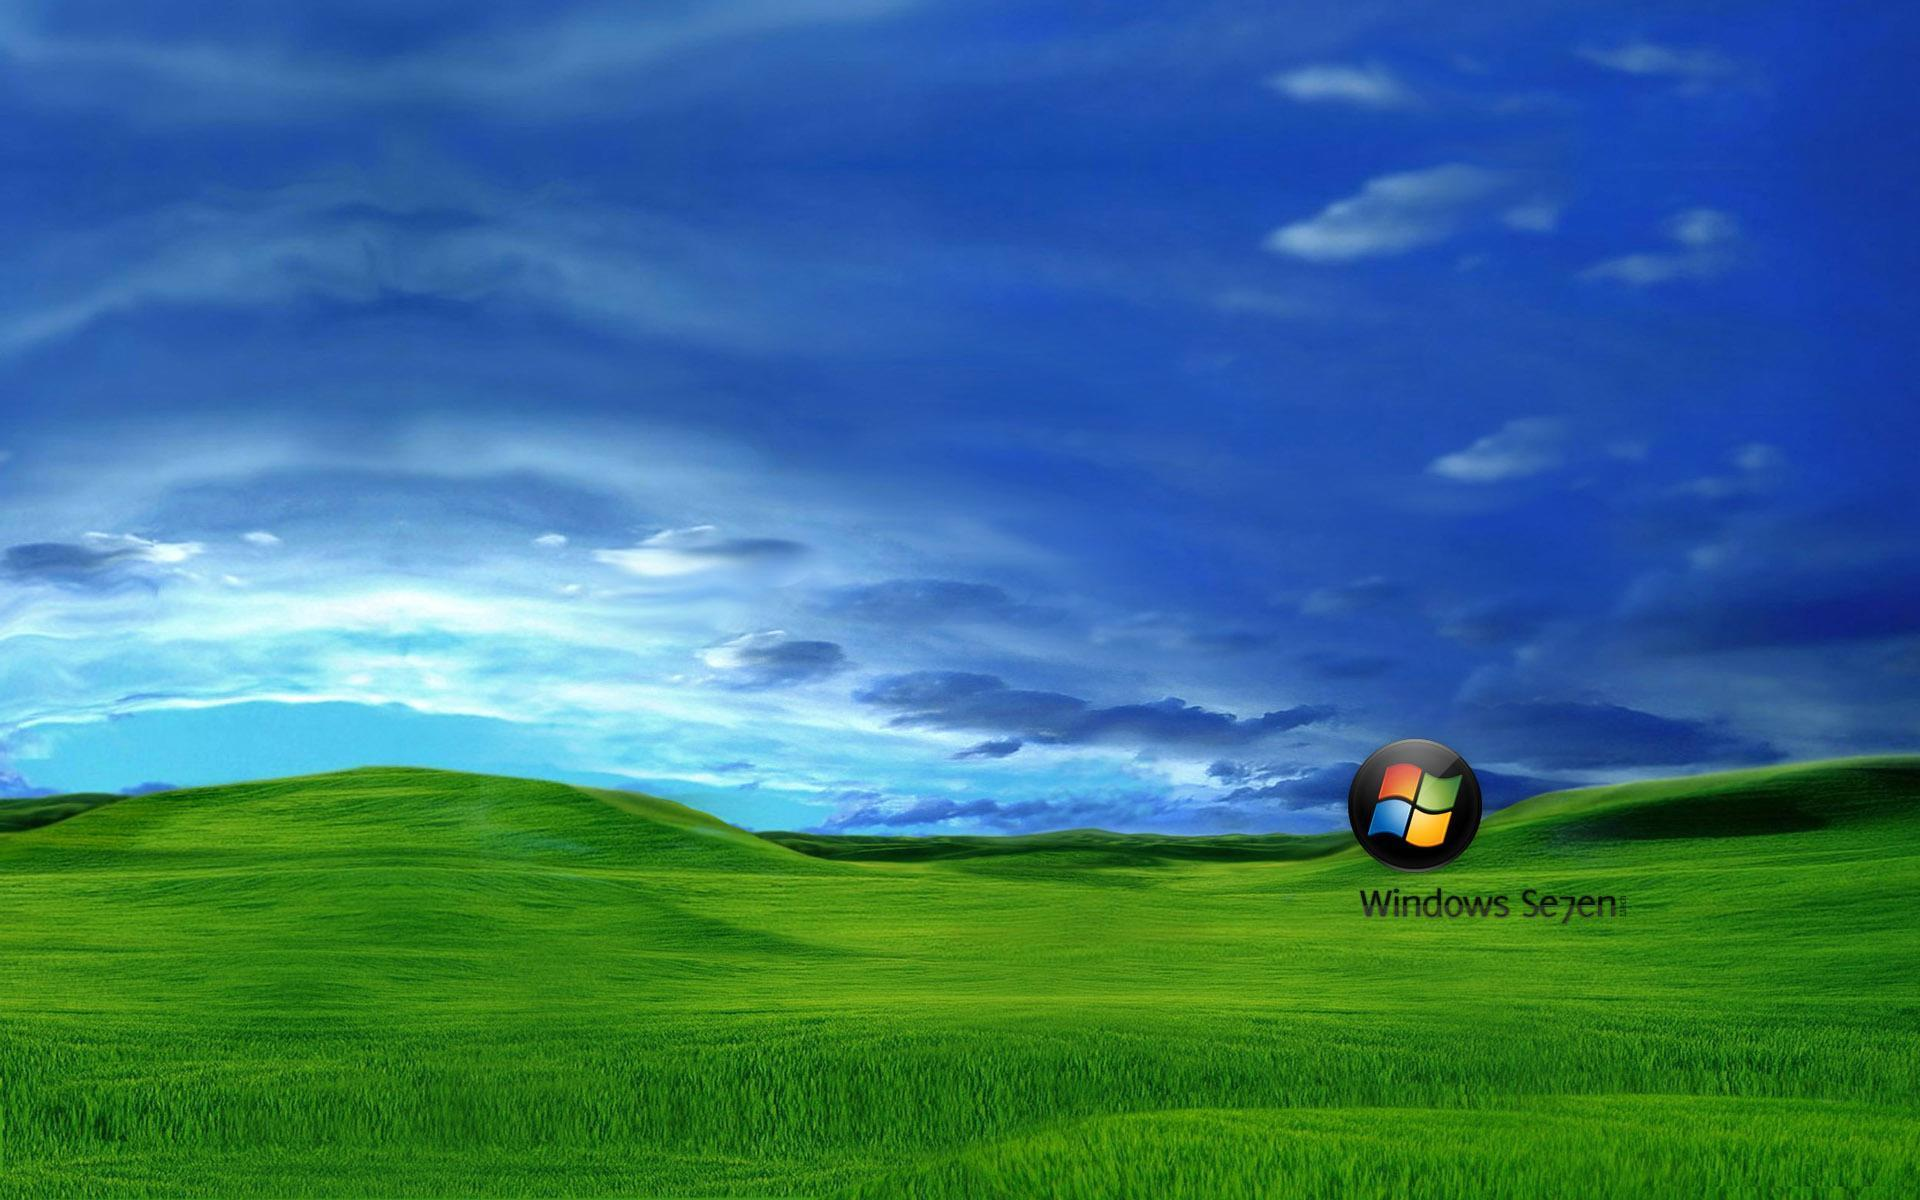 official windows 7 wallpapers wallpaper cave